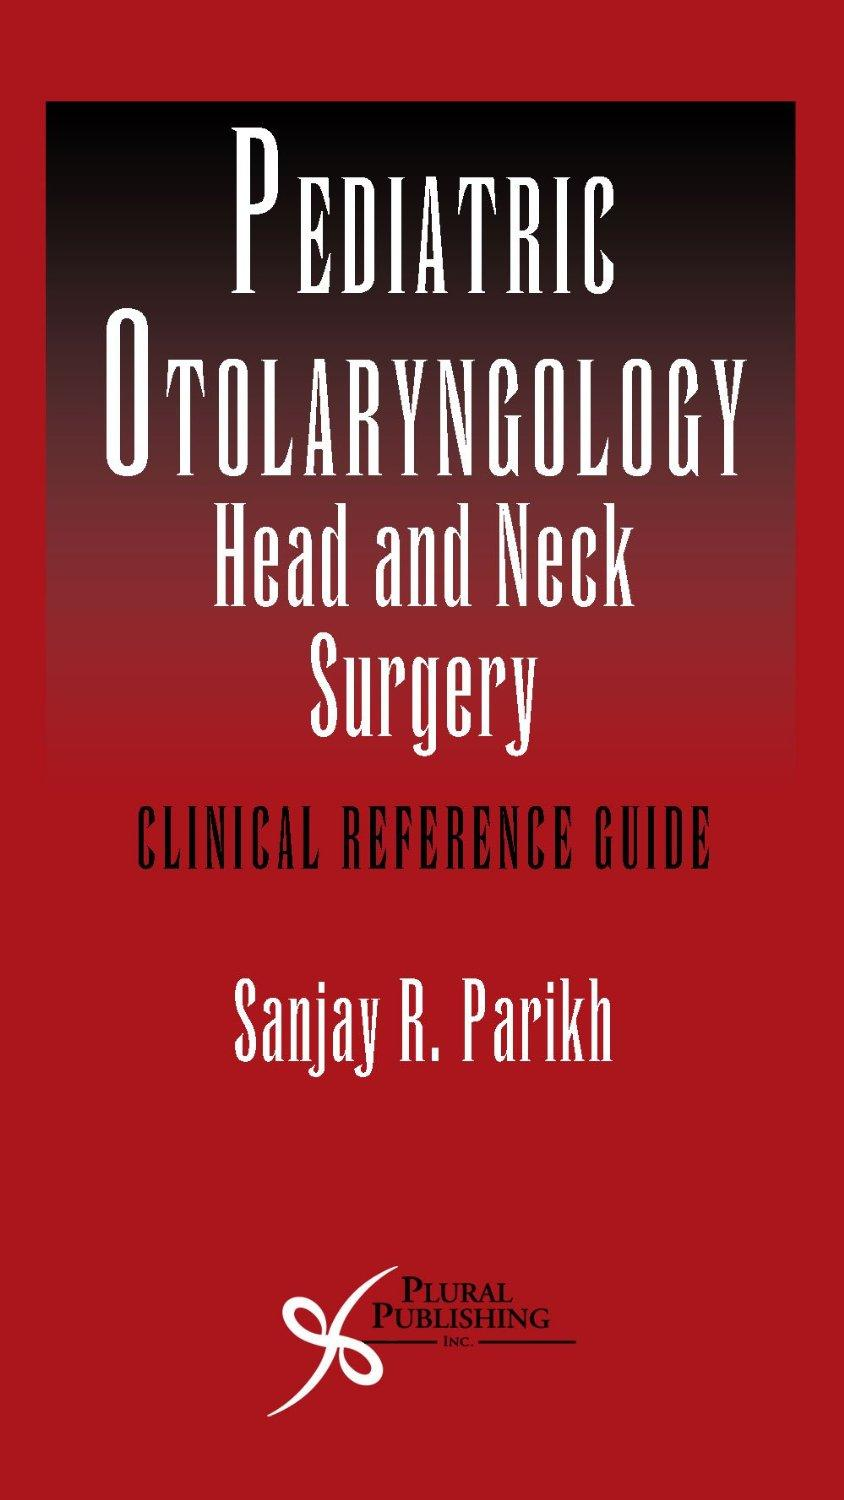 Pediatric Otolaryngology – Head and Neck Surgery: Clinical Reference Guide